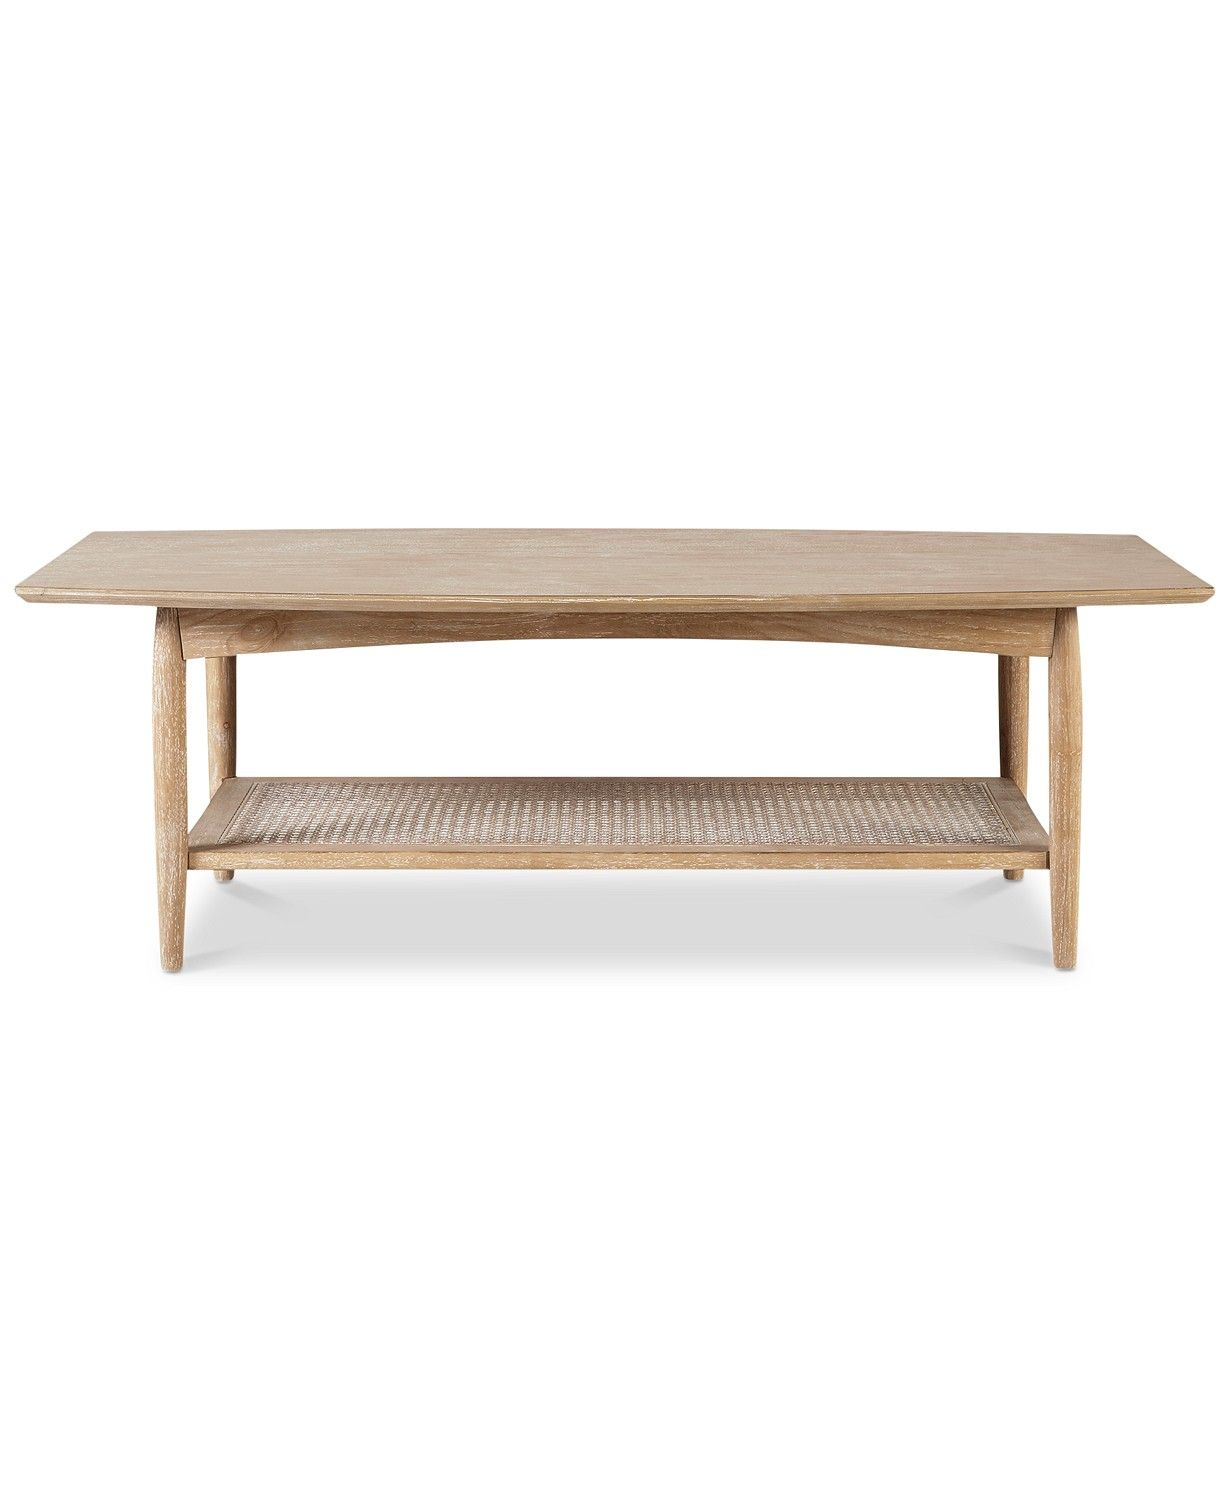 Furniture Leon Coffee Table Quick Ship Reviews Furniture Macy S Minimalist Coffee Table Furniture Coffee Table [ 1500 x 1230 Pixel ]